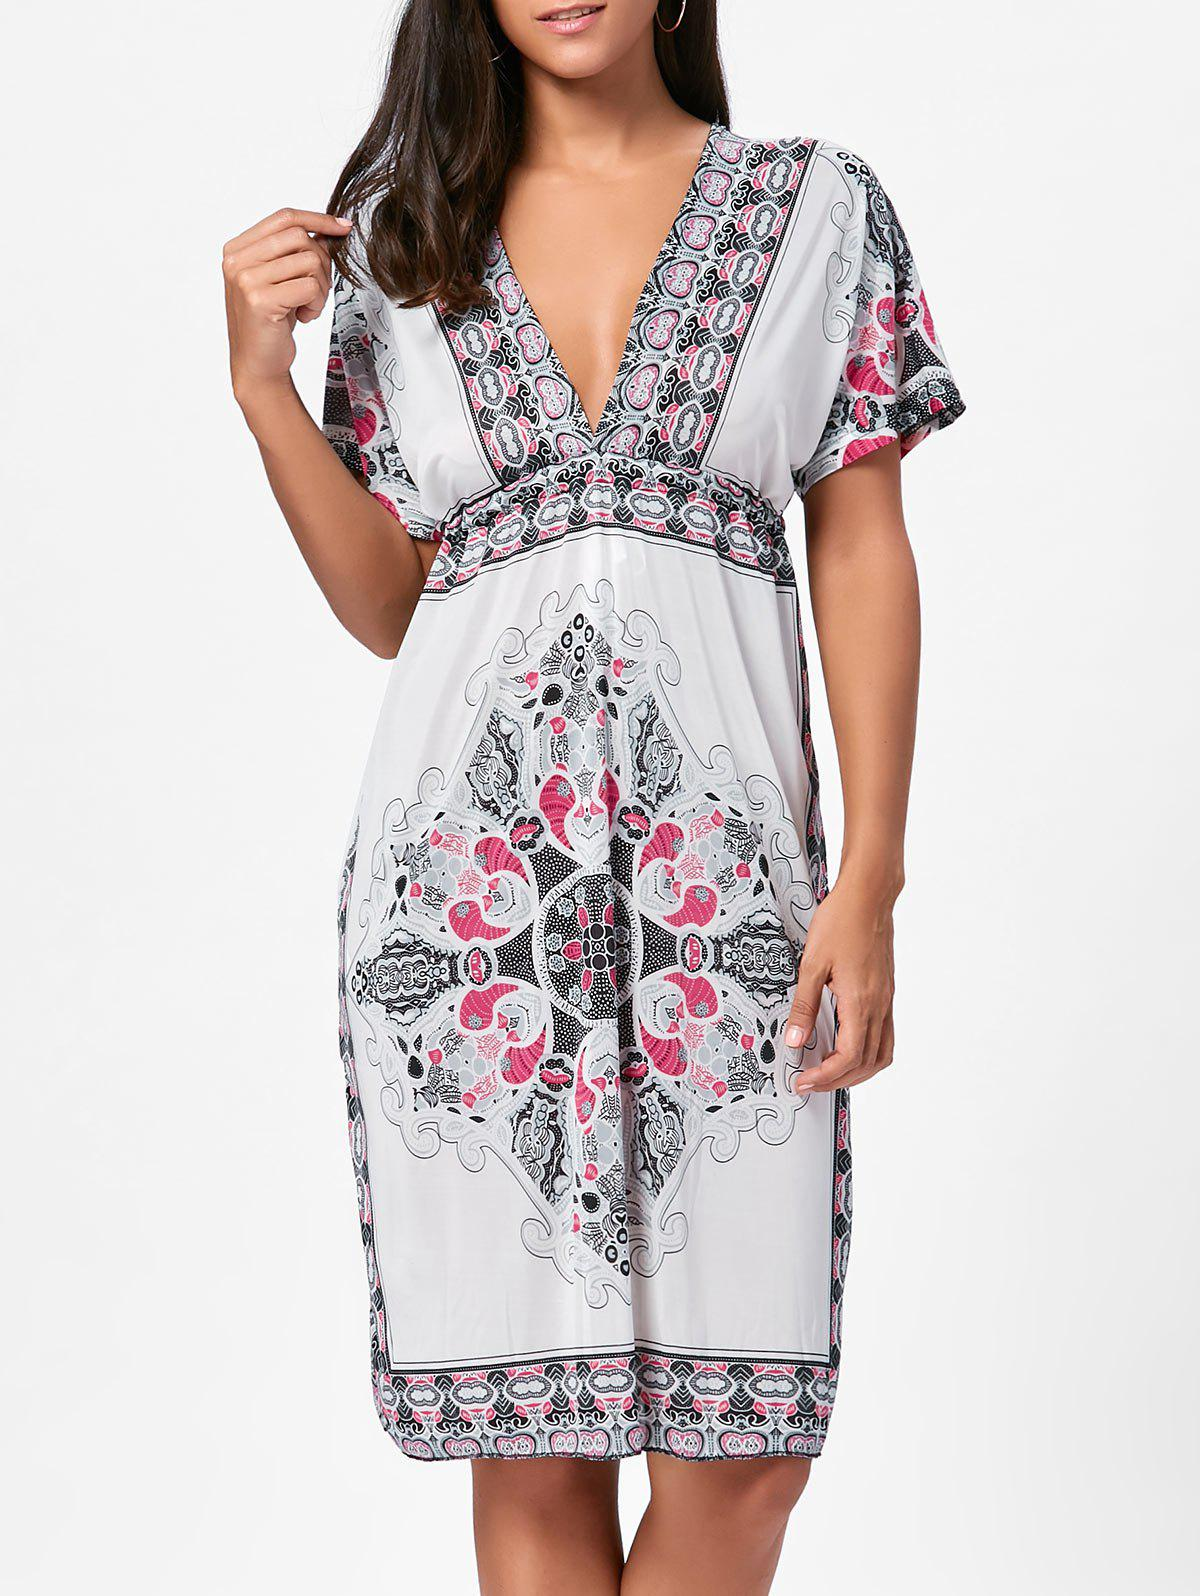 627fbd235584 2018 Backless Aztec Print Plunge Shift Dress In White One Size ...